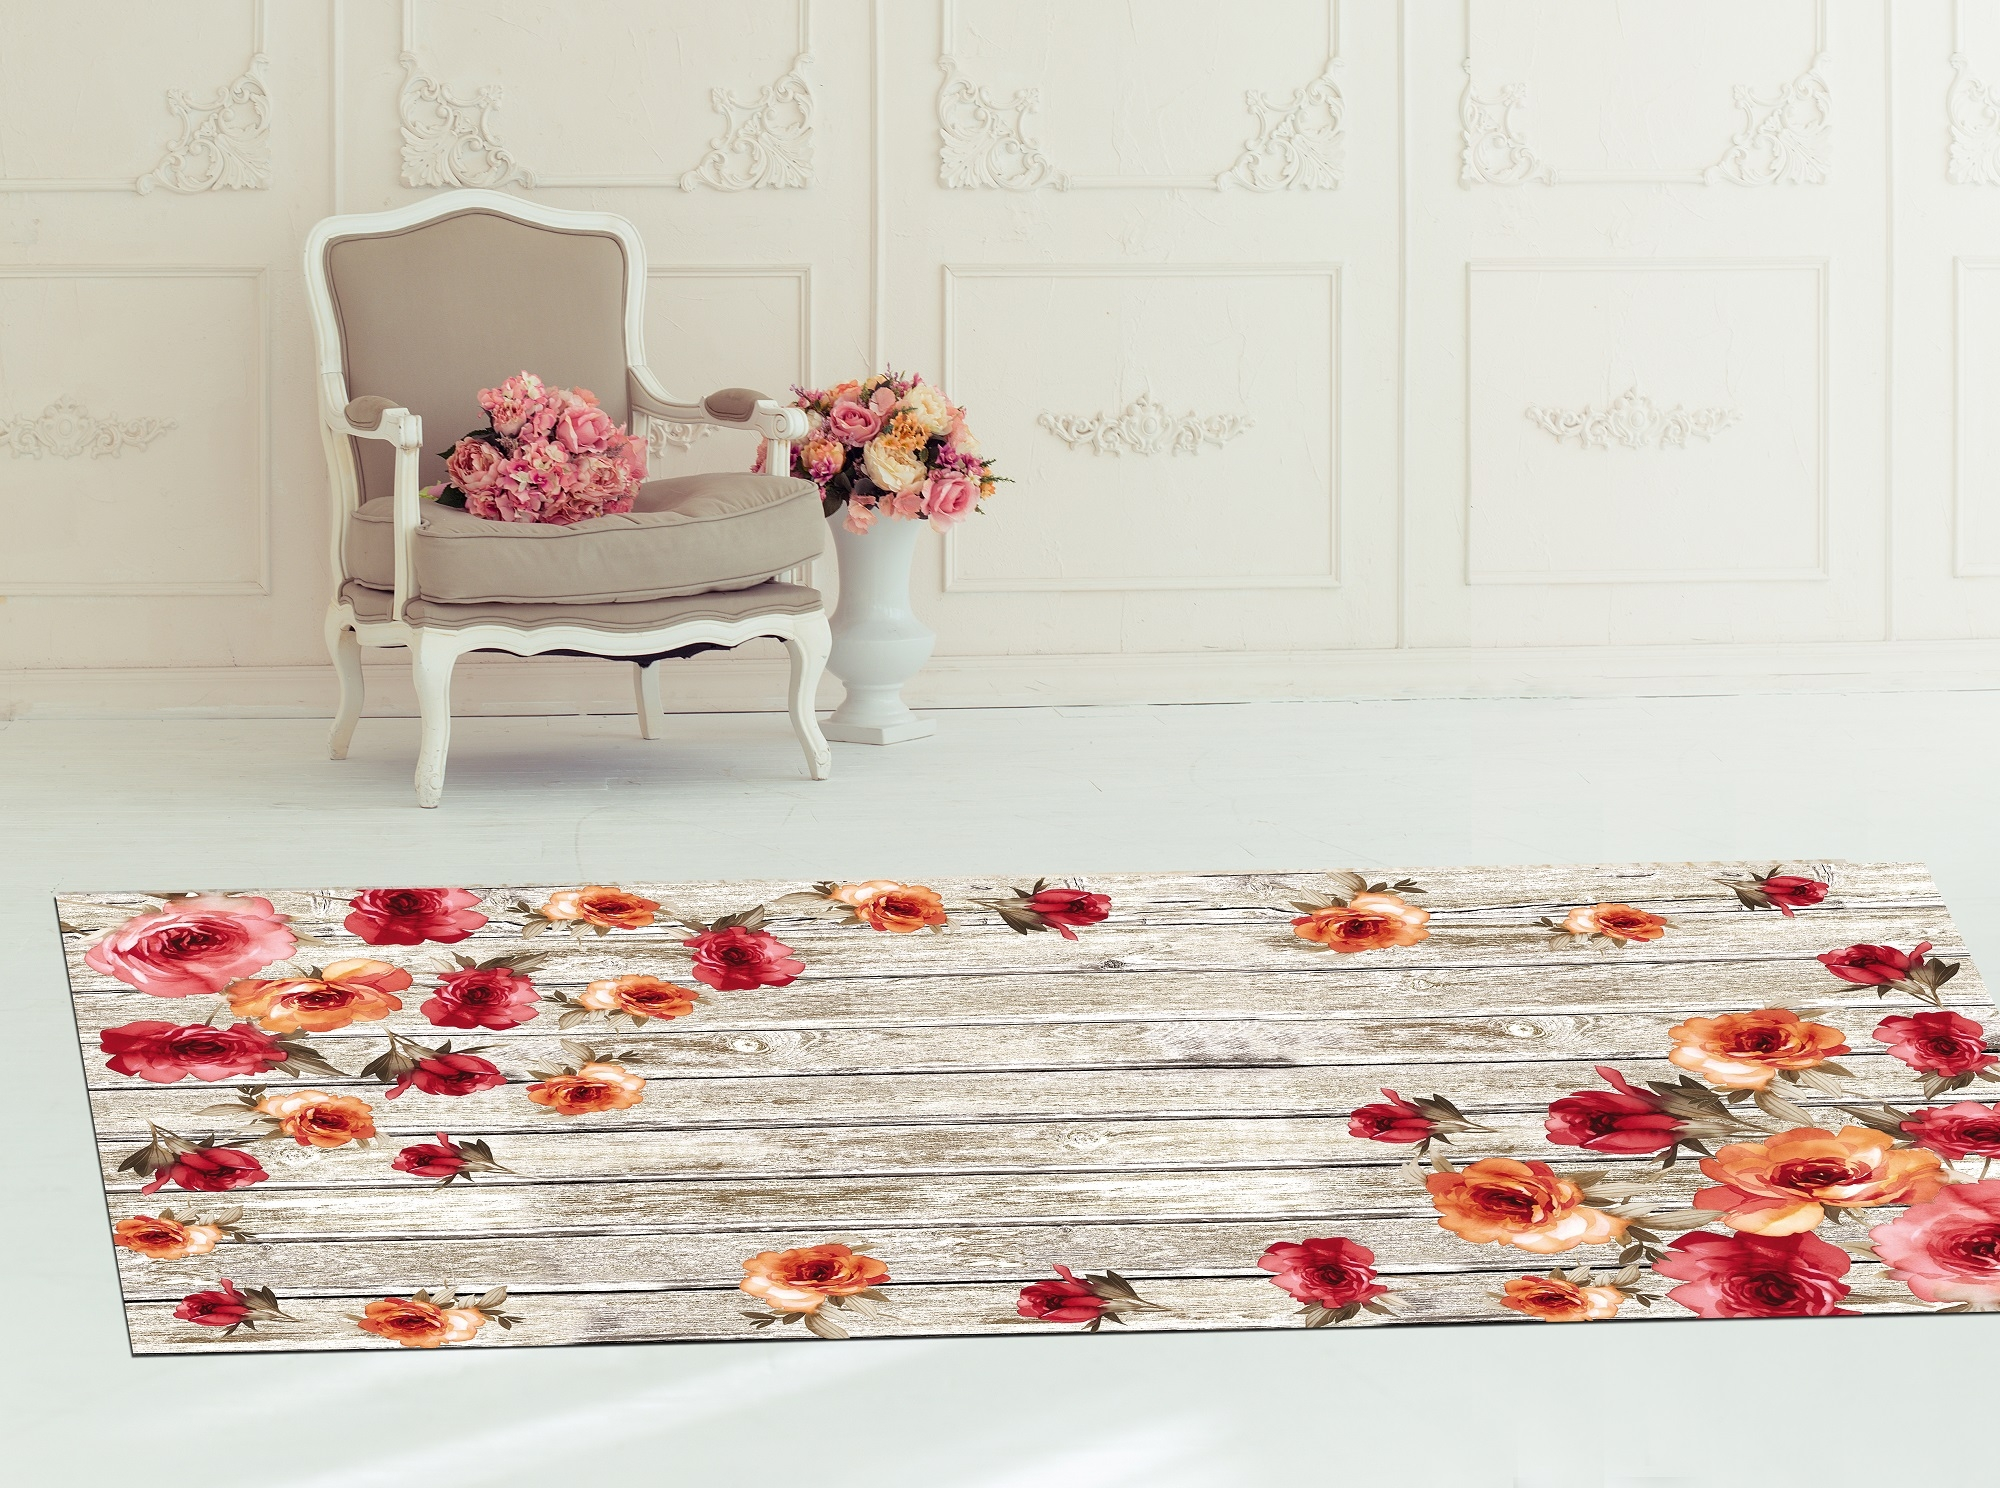 Covor Roses 5017 Multicolor, 80 x 150 cm imagine